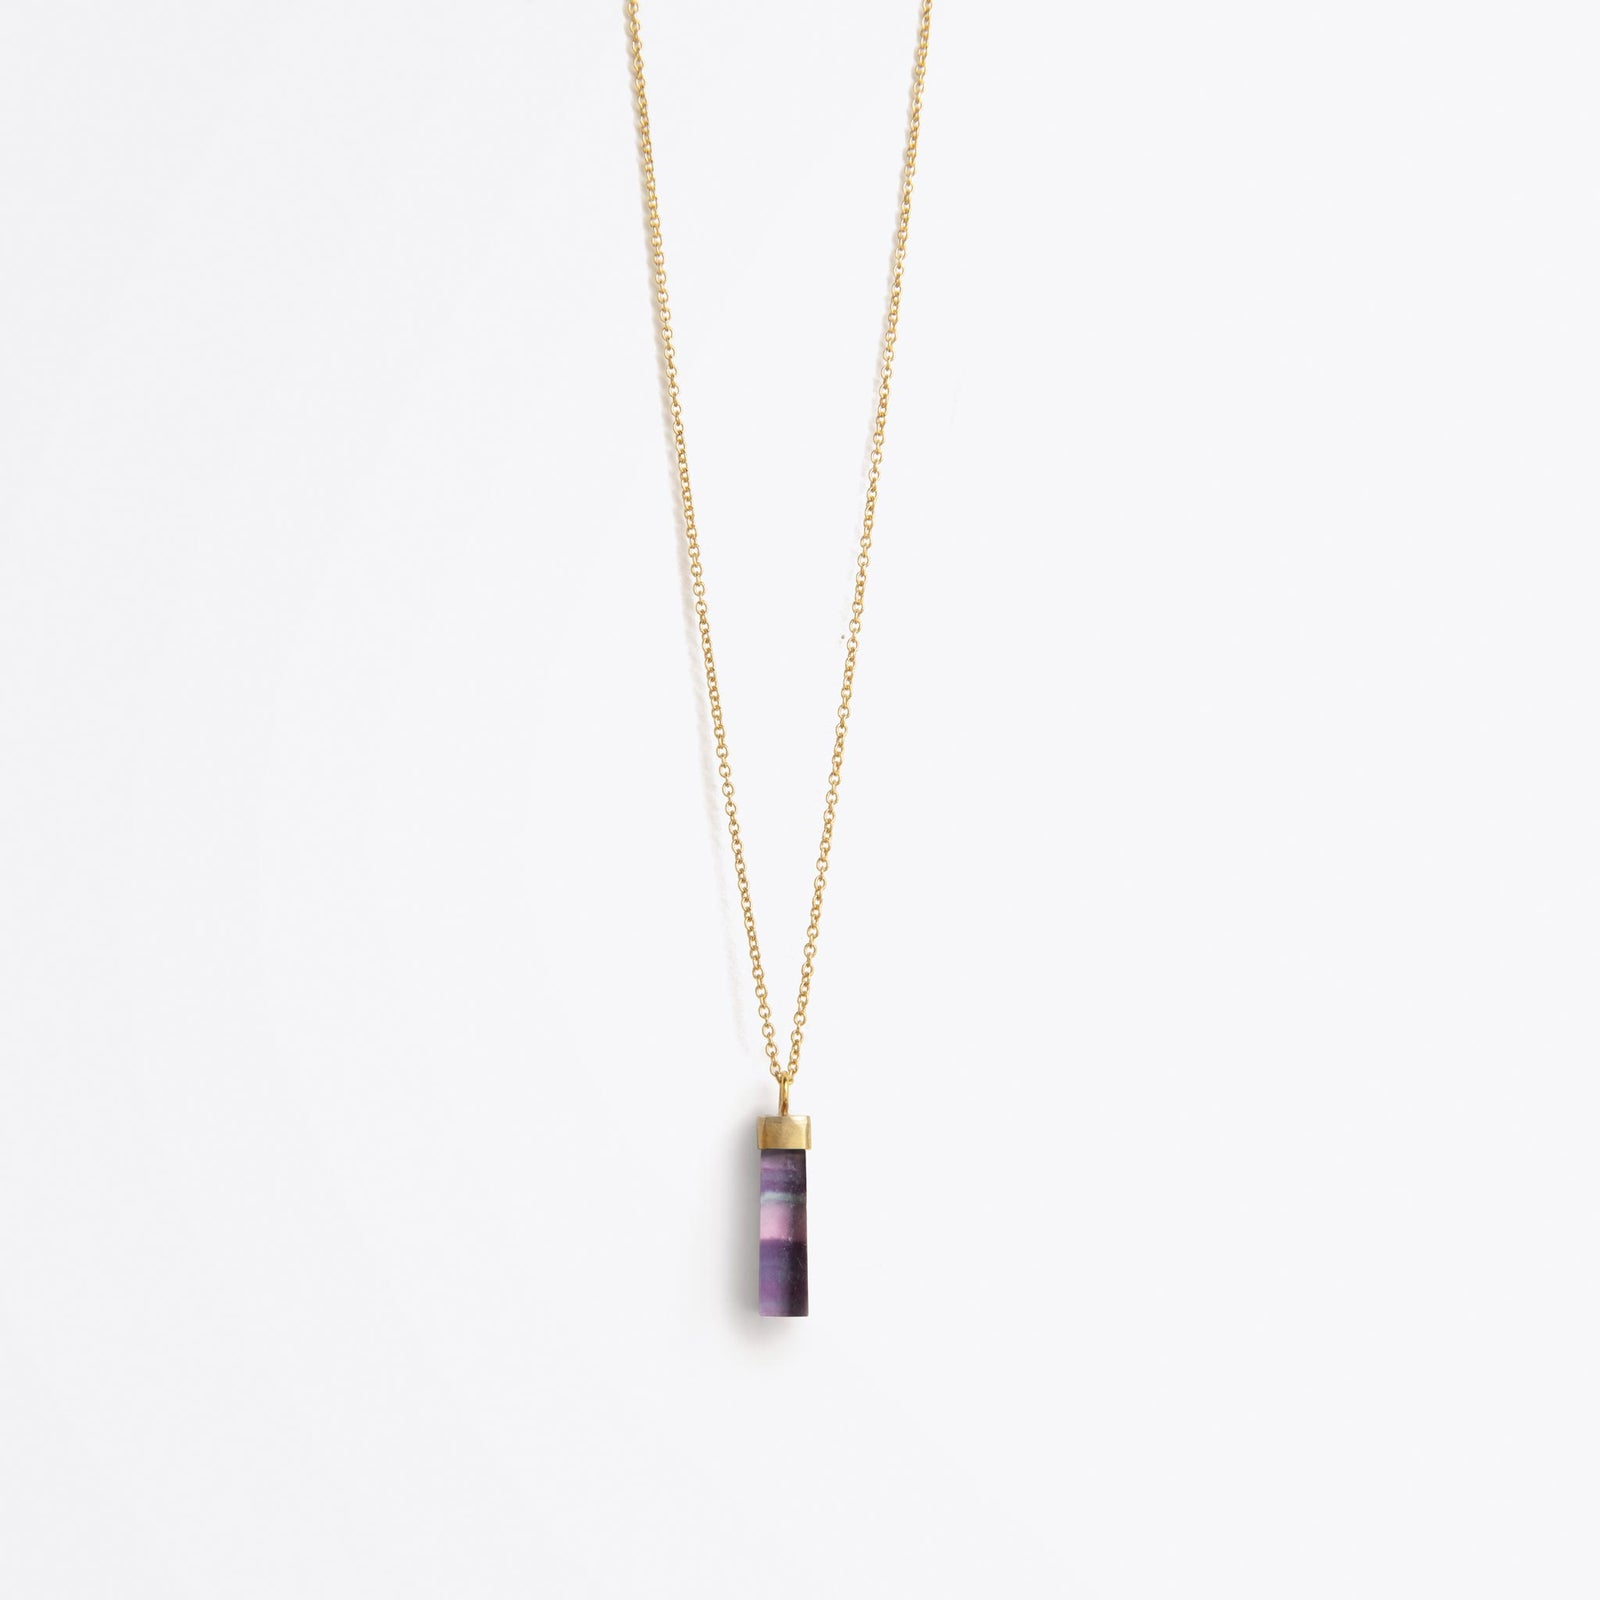 Wanderlust Life Ethically Handmade jewellery made in the UK. Minimalist gold and fine cord jewellery. talisman fine gold chain necklace, rainbow fluorite